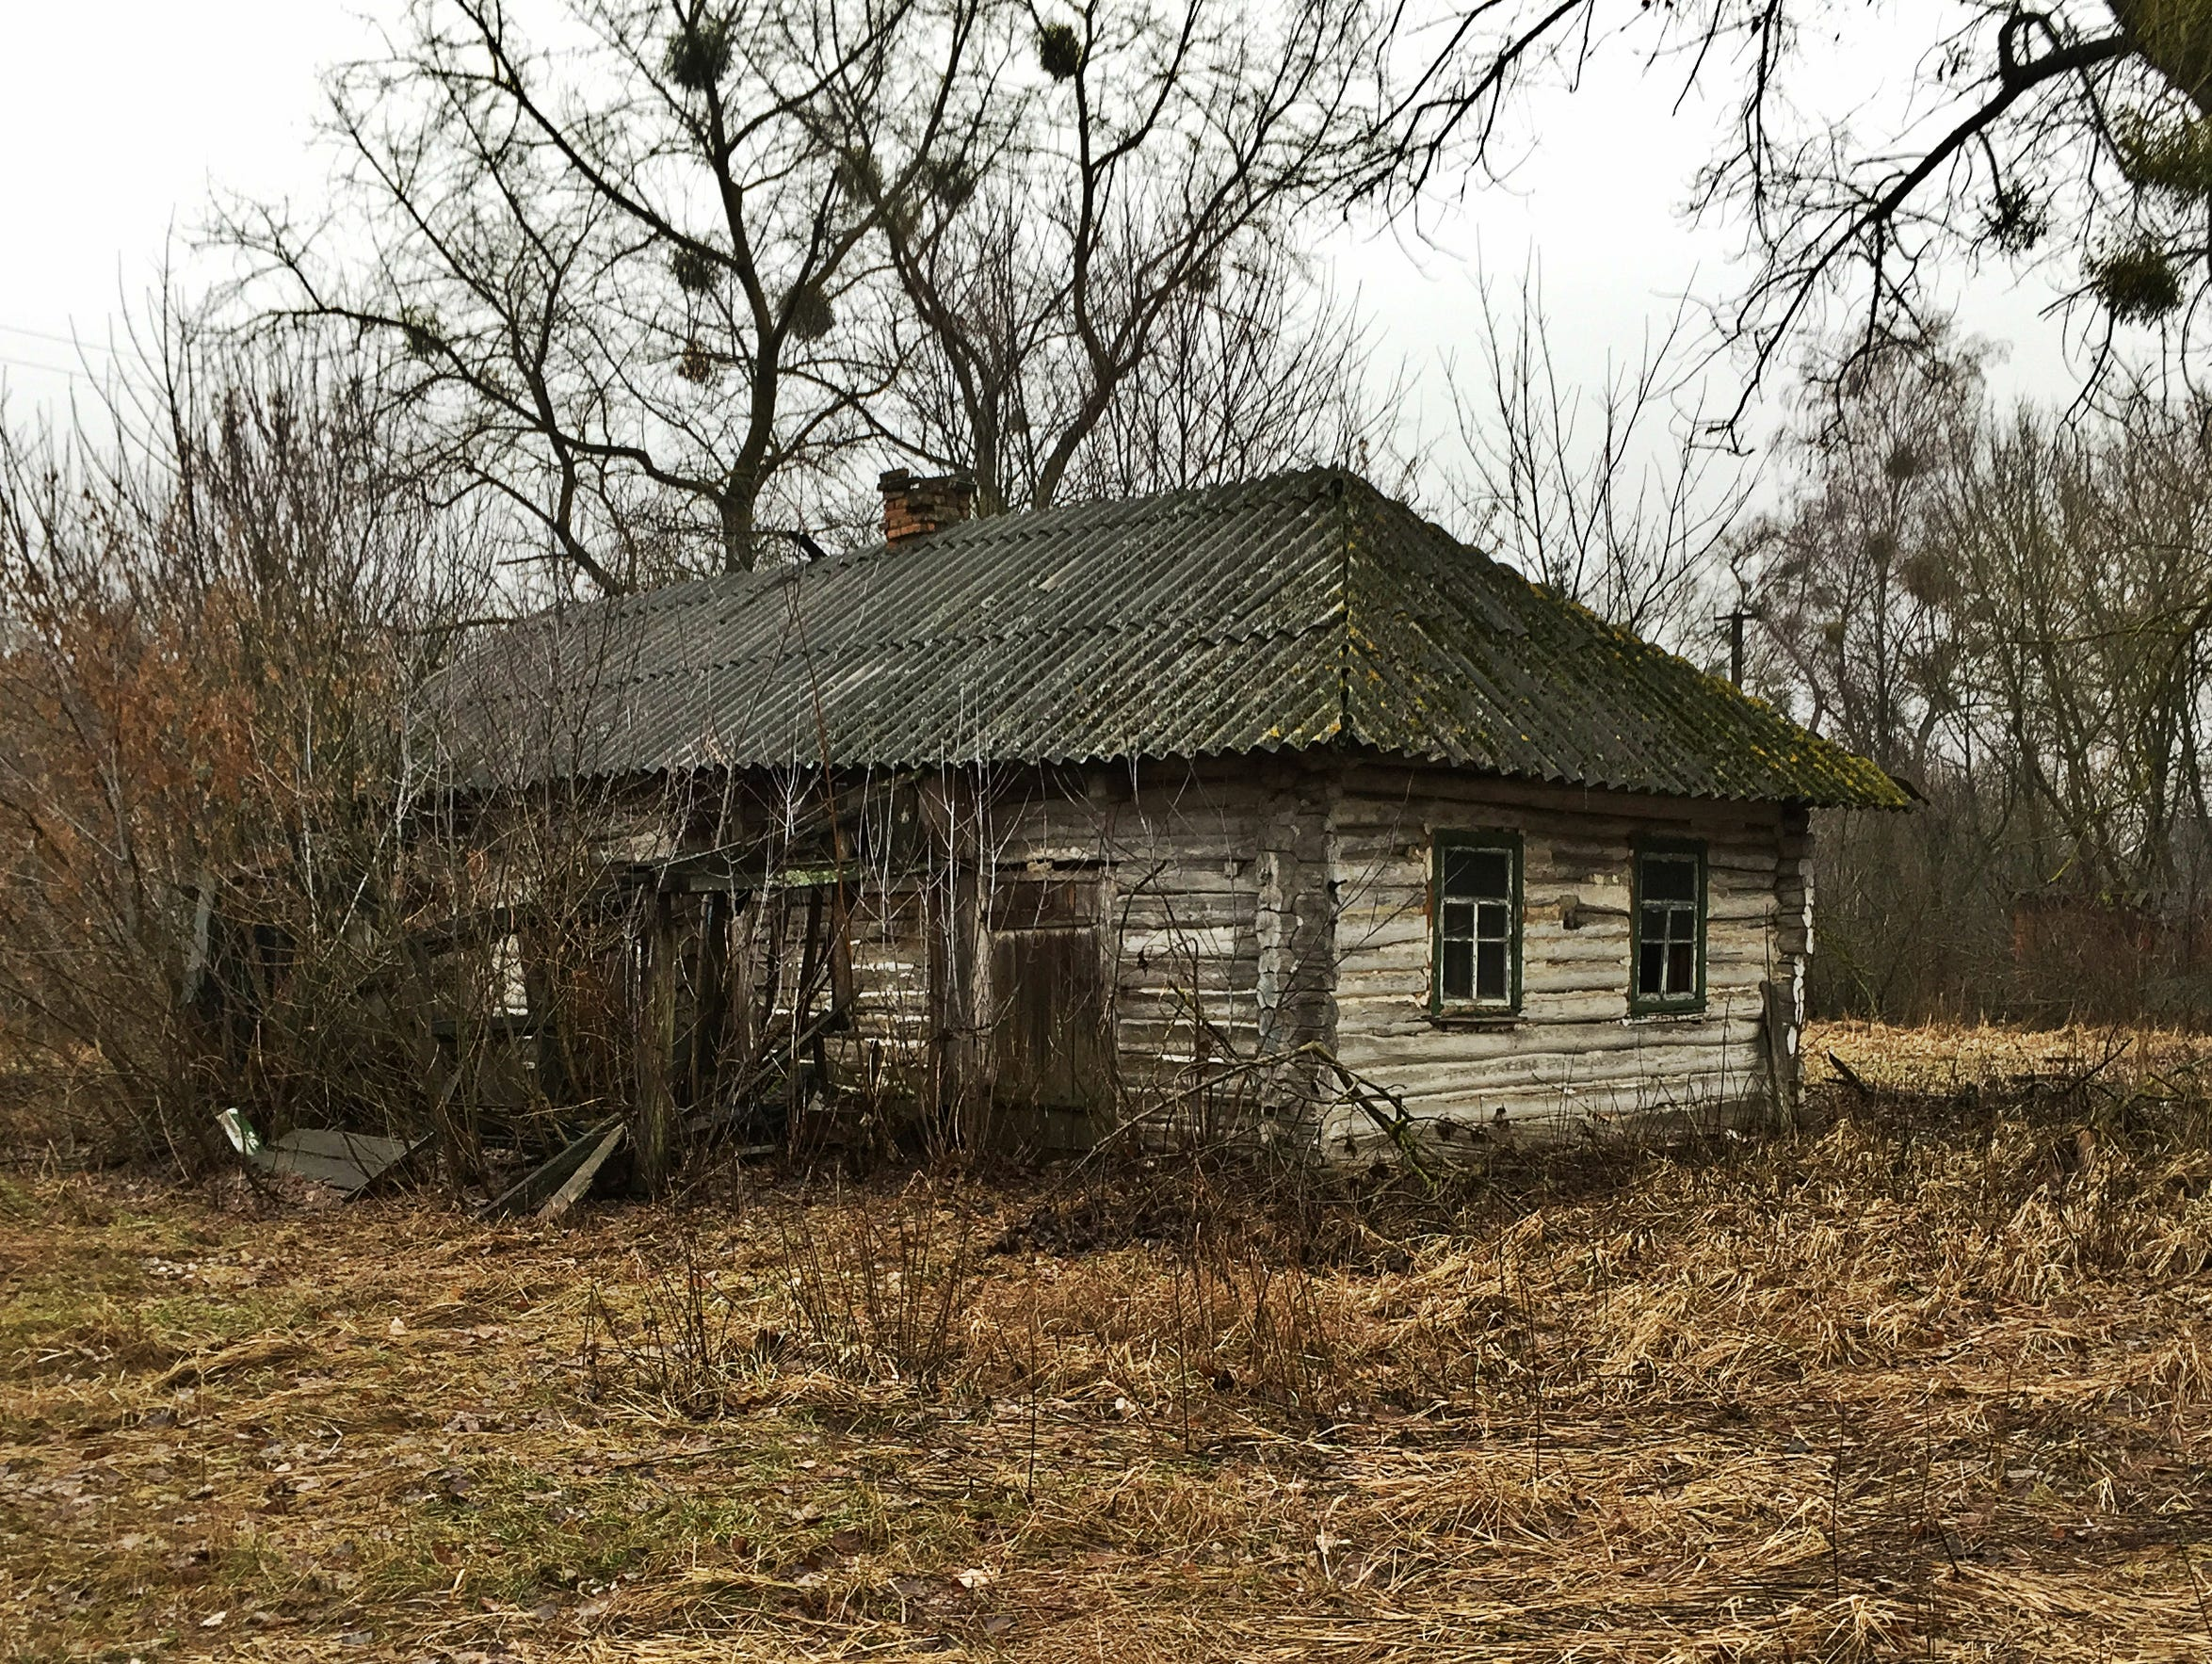 An abandoned house in the Exclusion Zone.